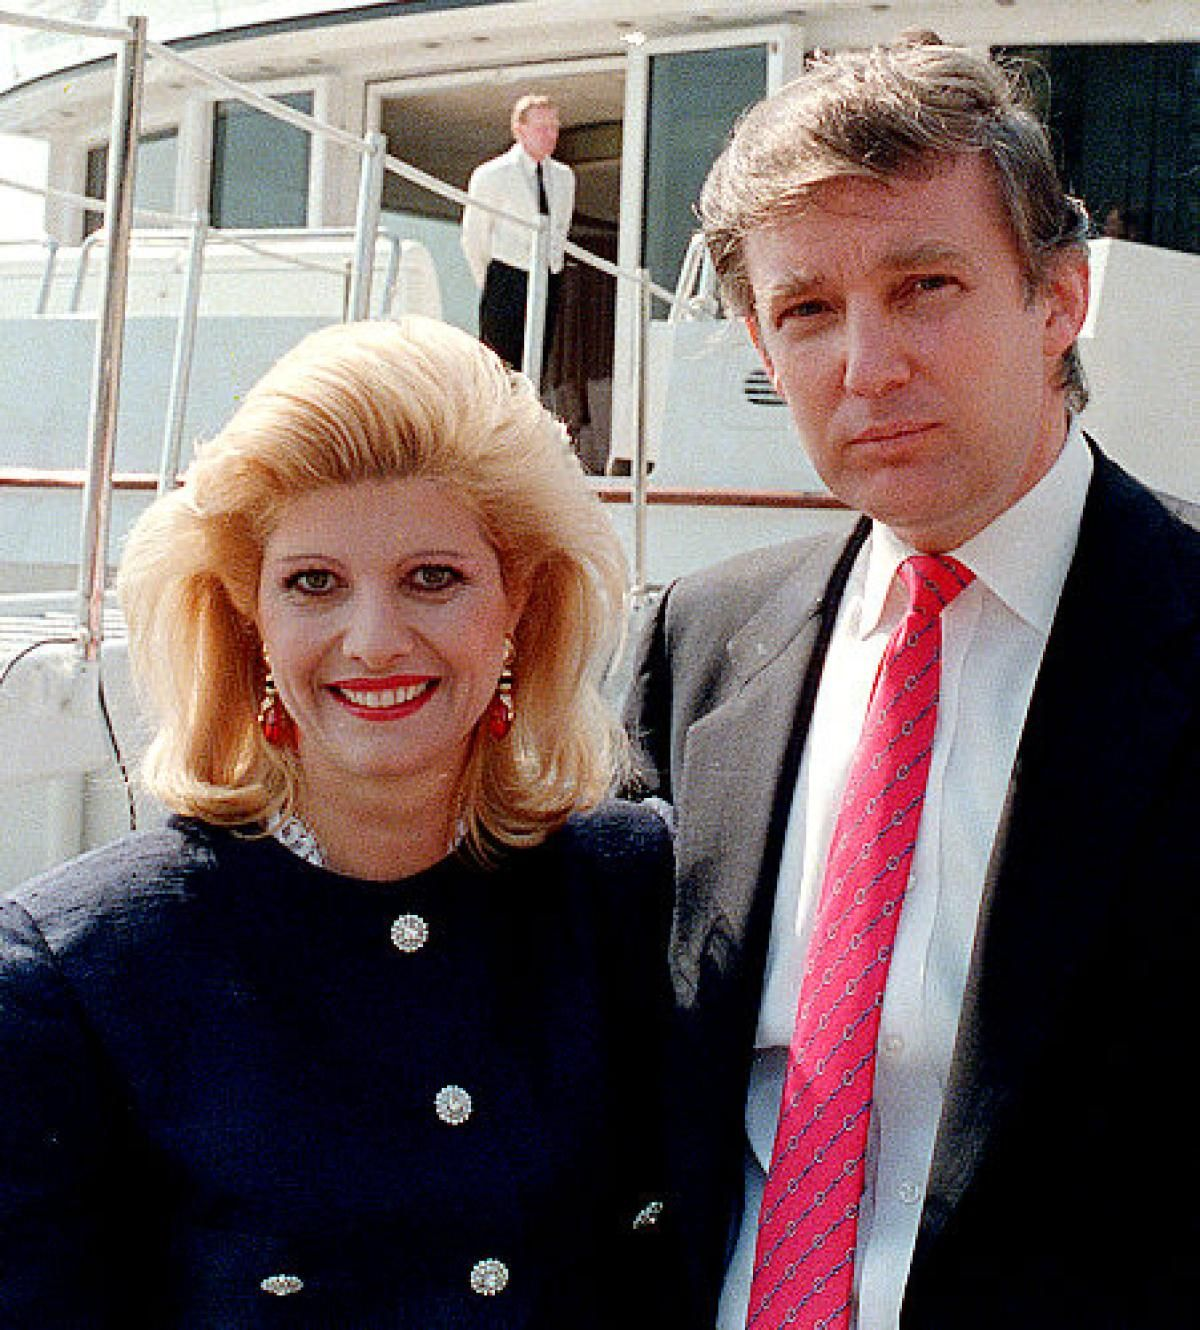 Ivana Trump says he raped her during divorce in 1989.